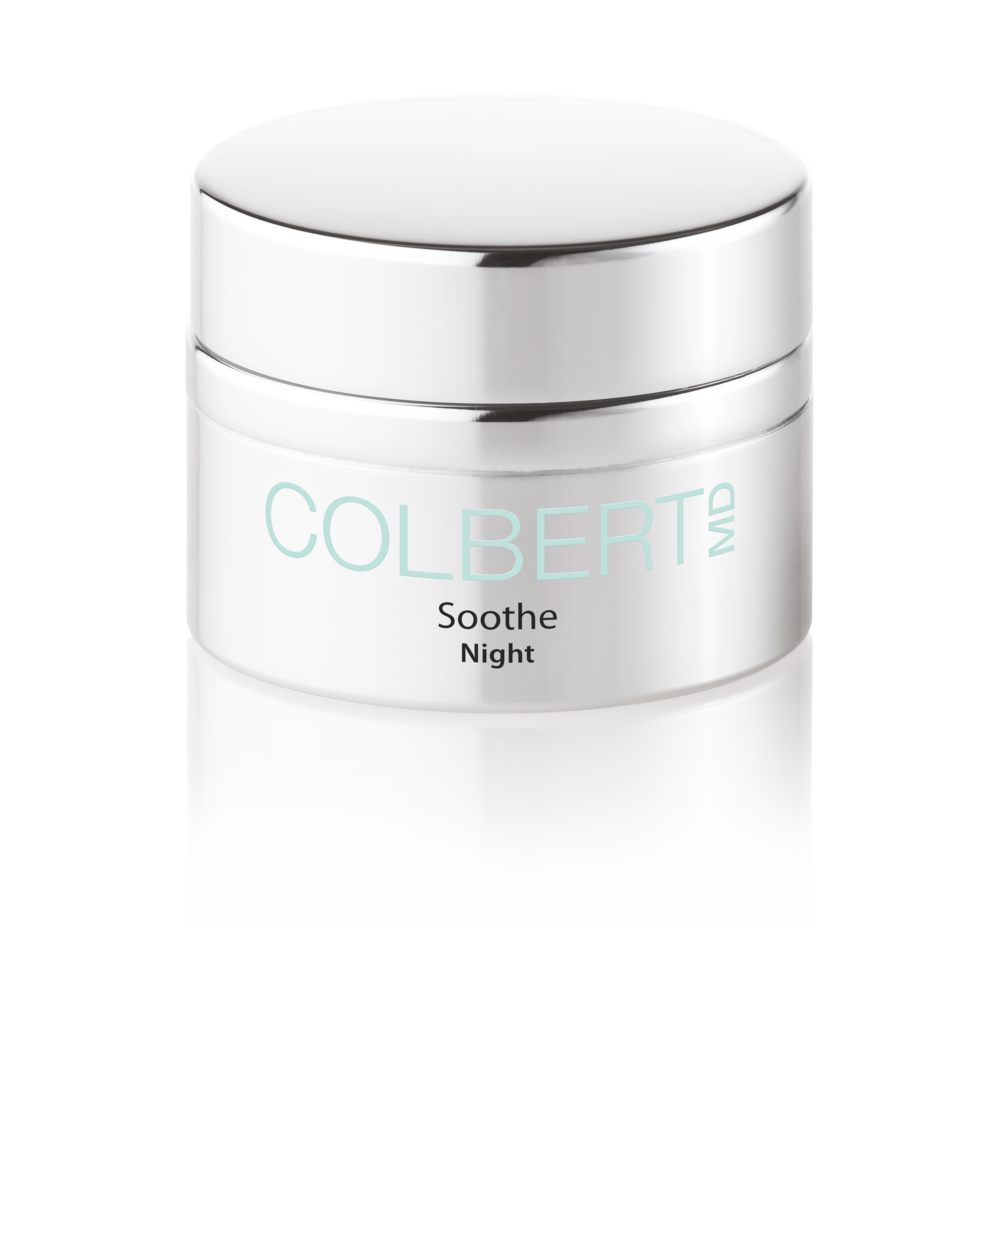 Colbert MD Soothe Night Cream, Available at Colbert MD